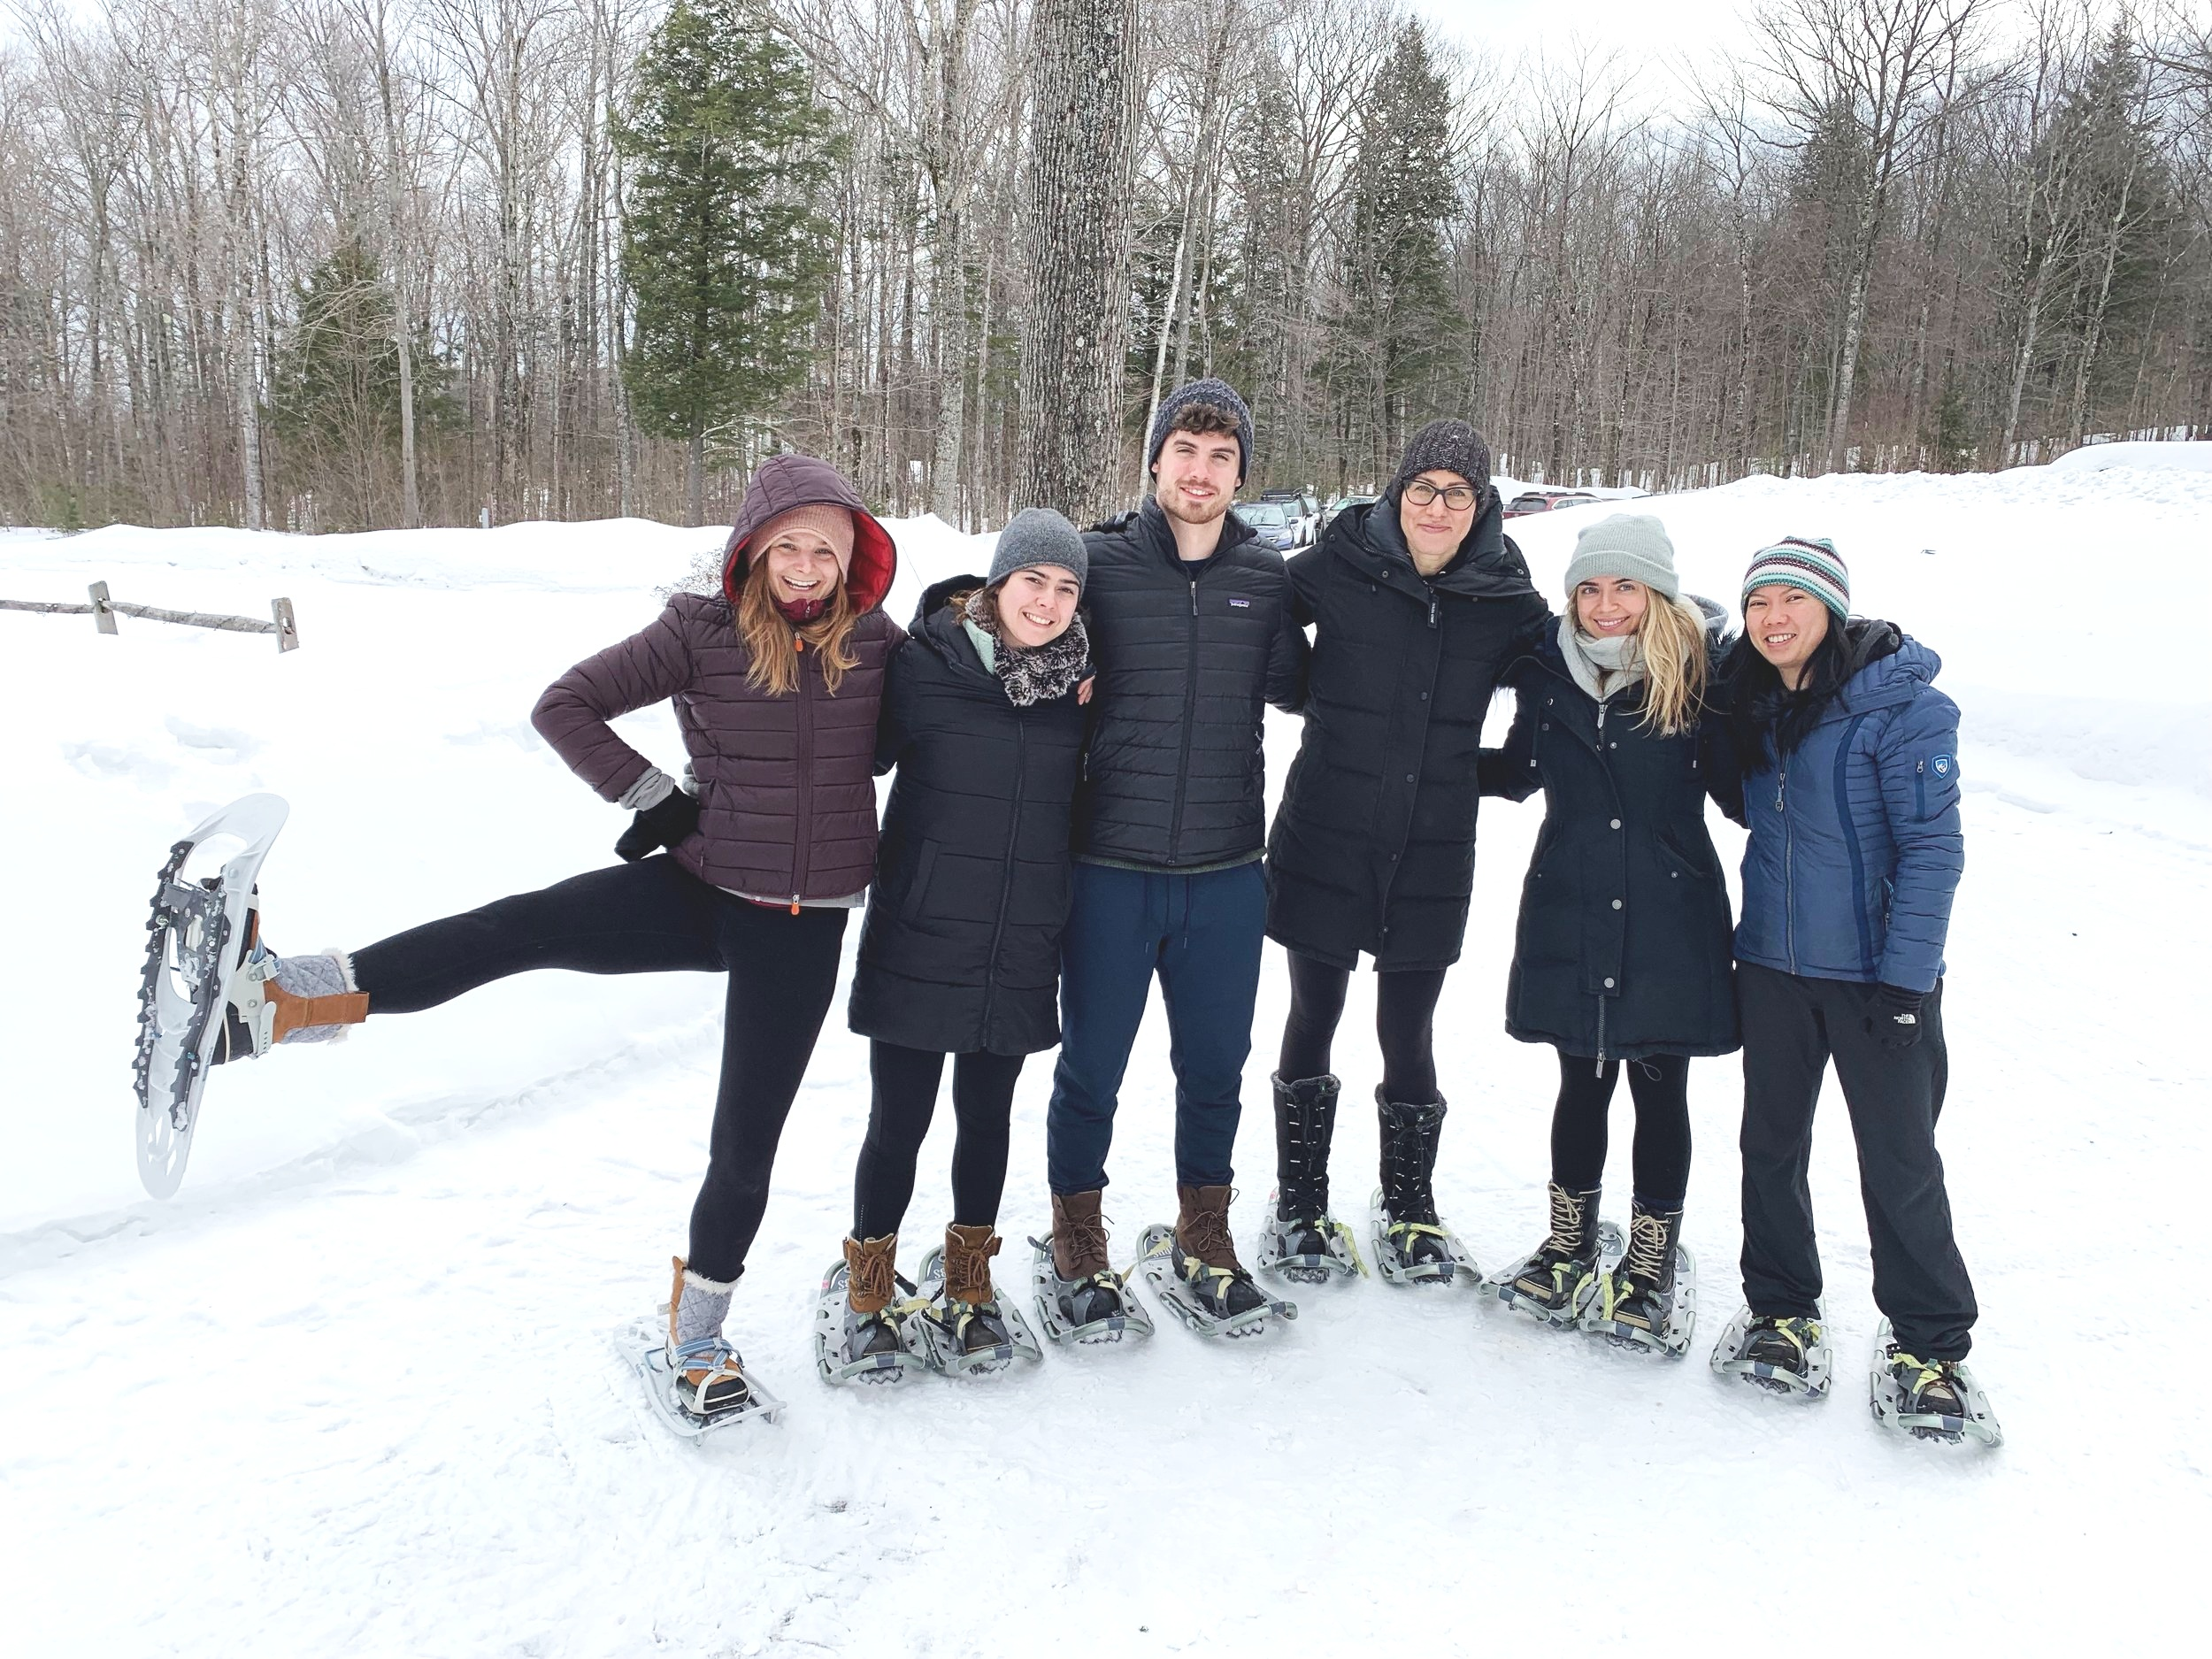 Our Snow-shoe group headed our for an after hike, North Sandwich, NH